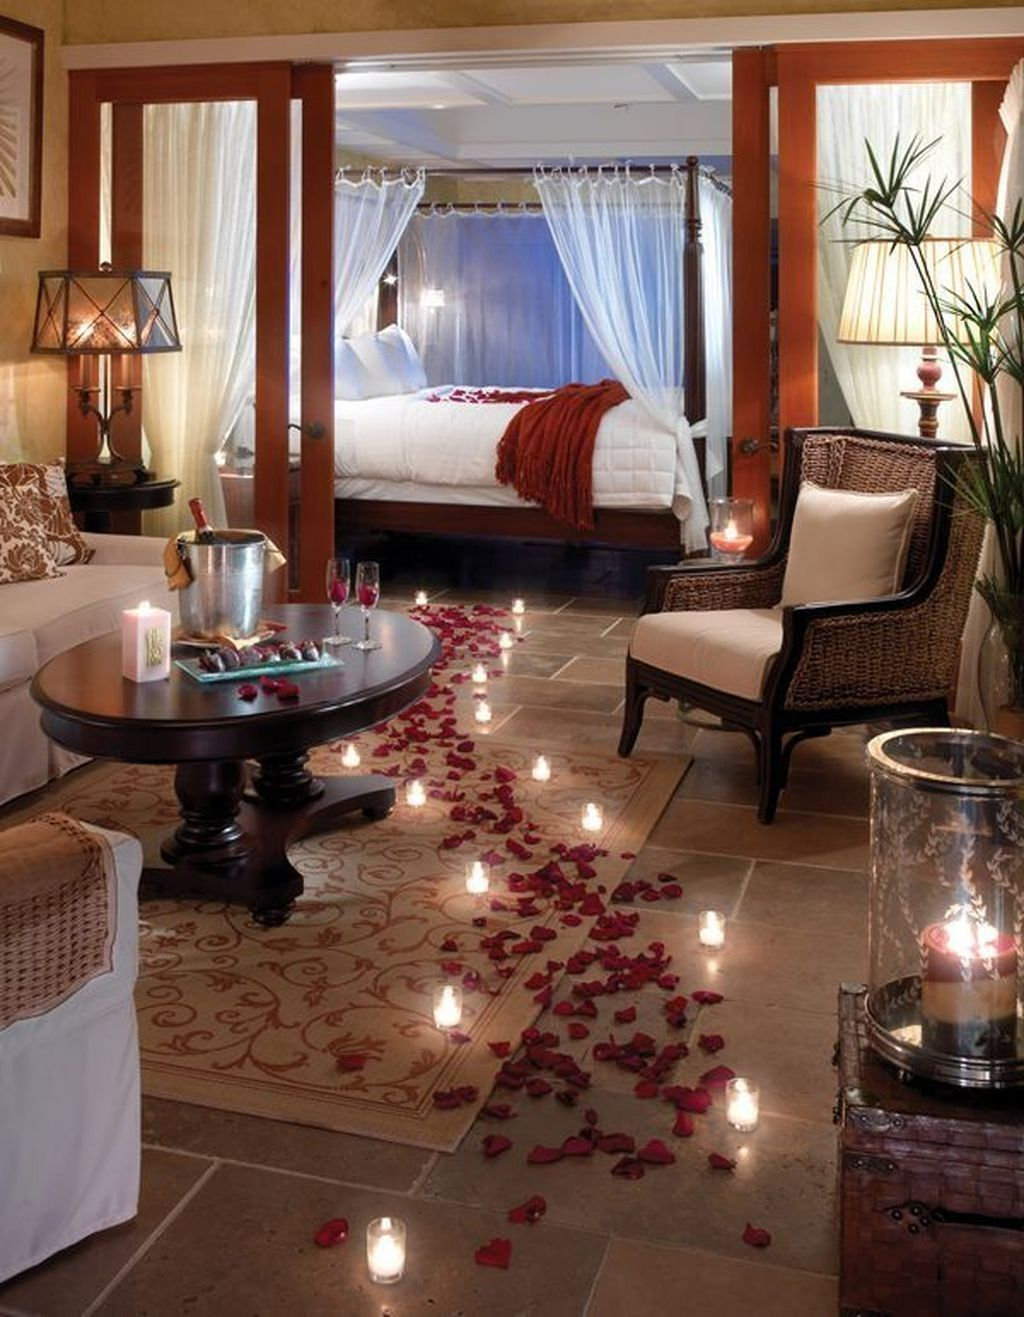 Romantic Bedroom At Night: Awesome 41 Romantic Valentine Bedroom Decor Ideas For